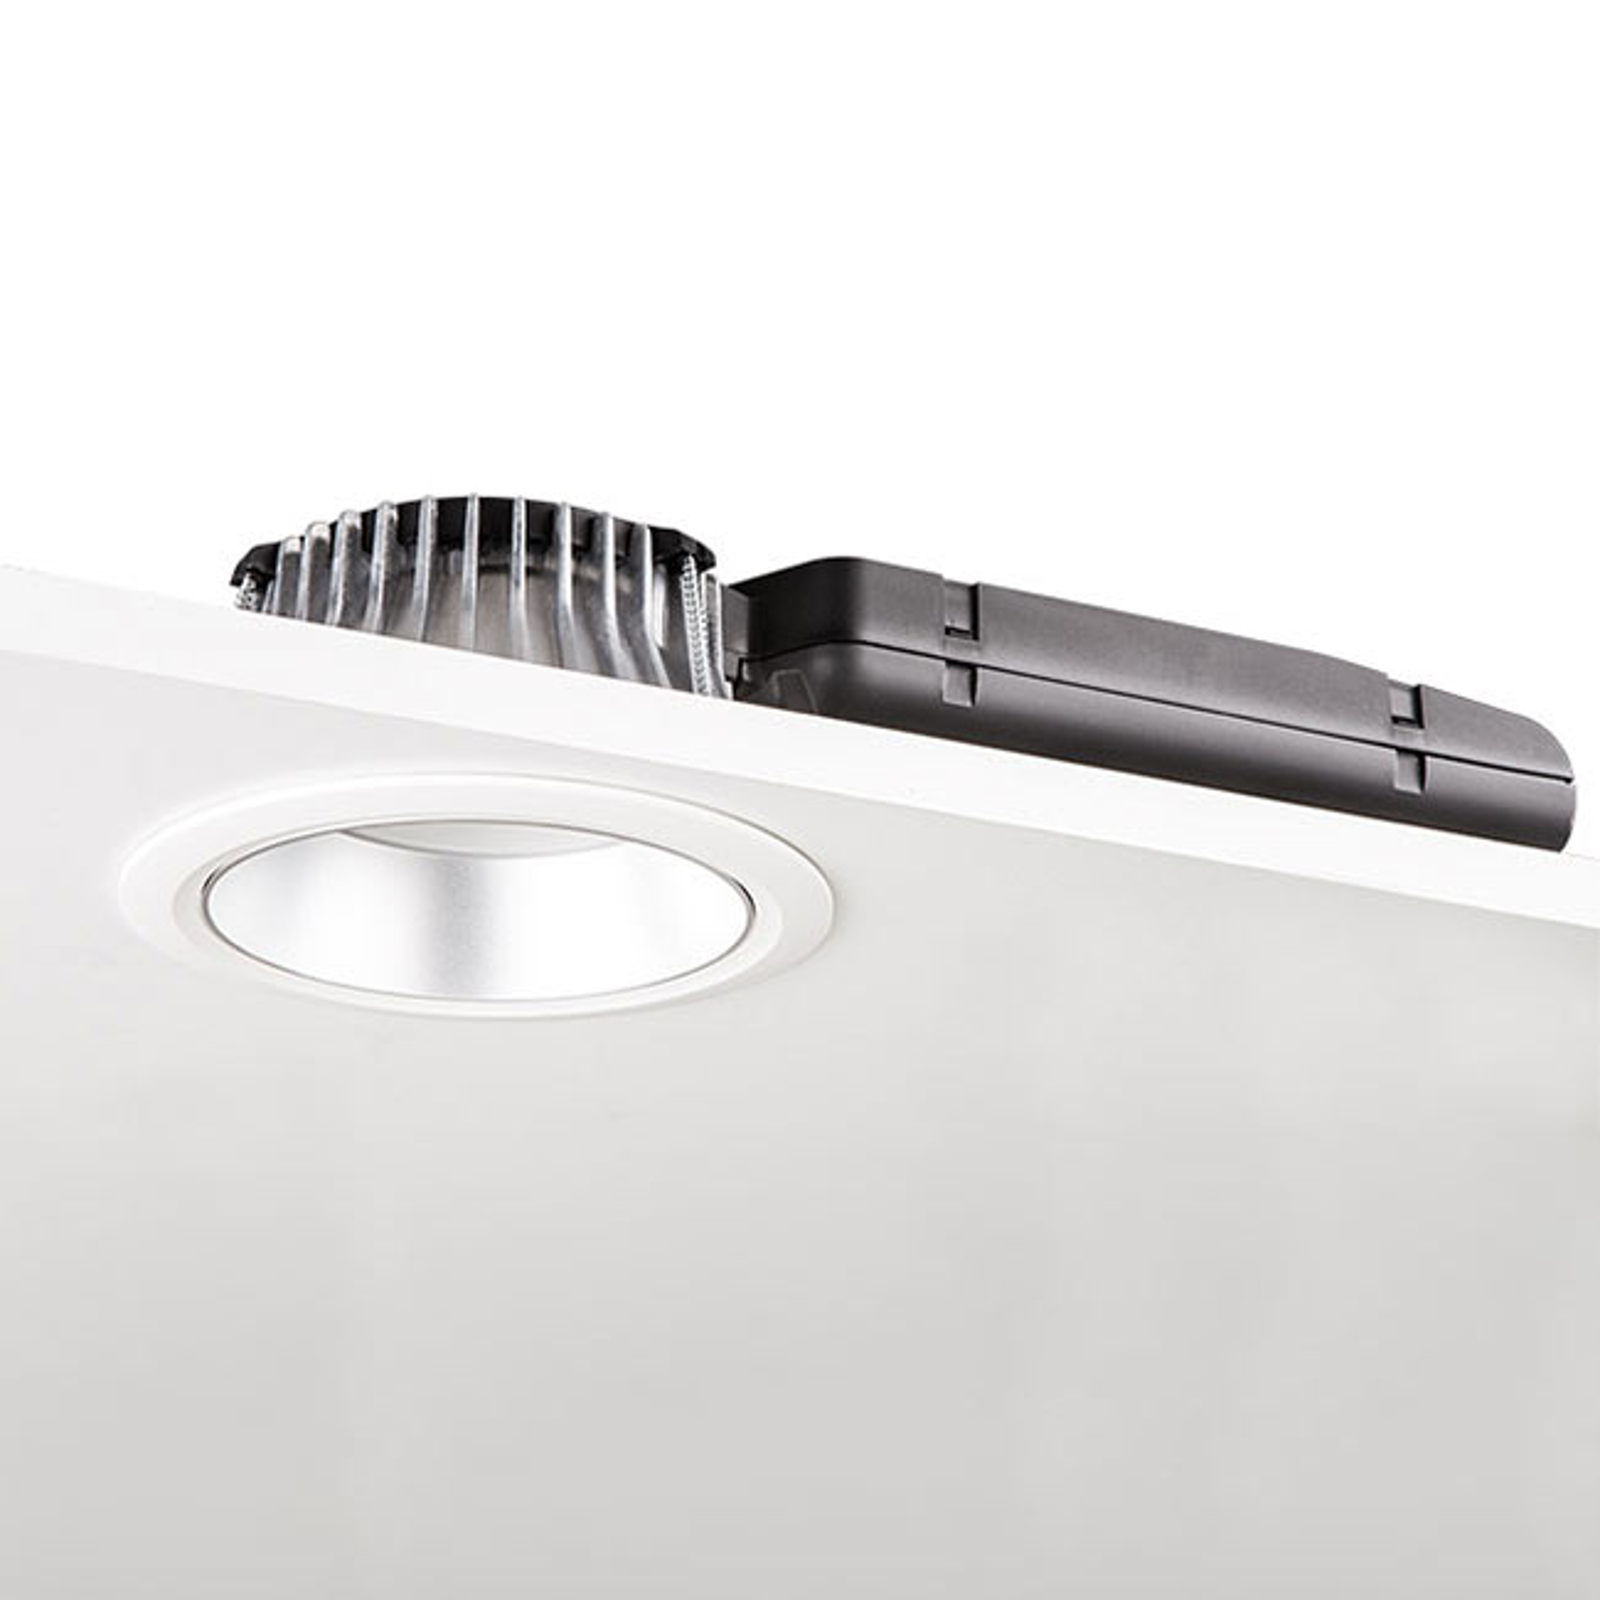 Downlight LED D70-RF155 HF 3 000K blanc/argent mat